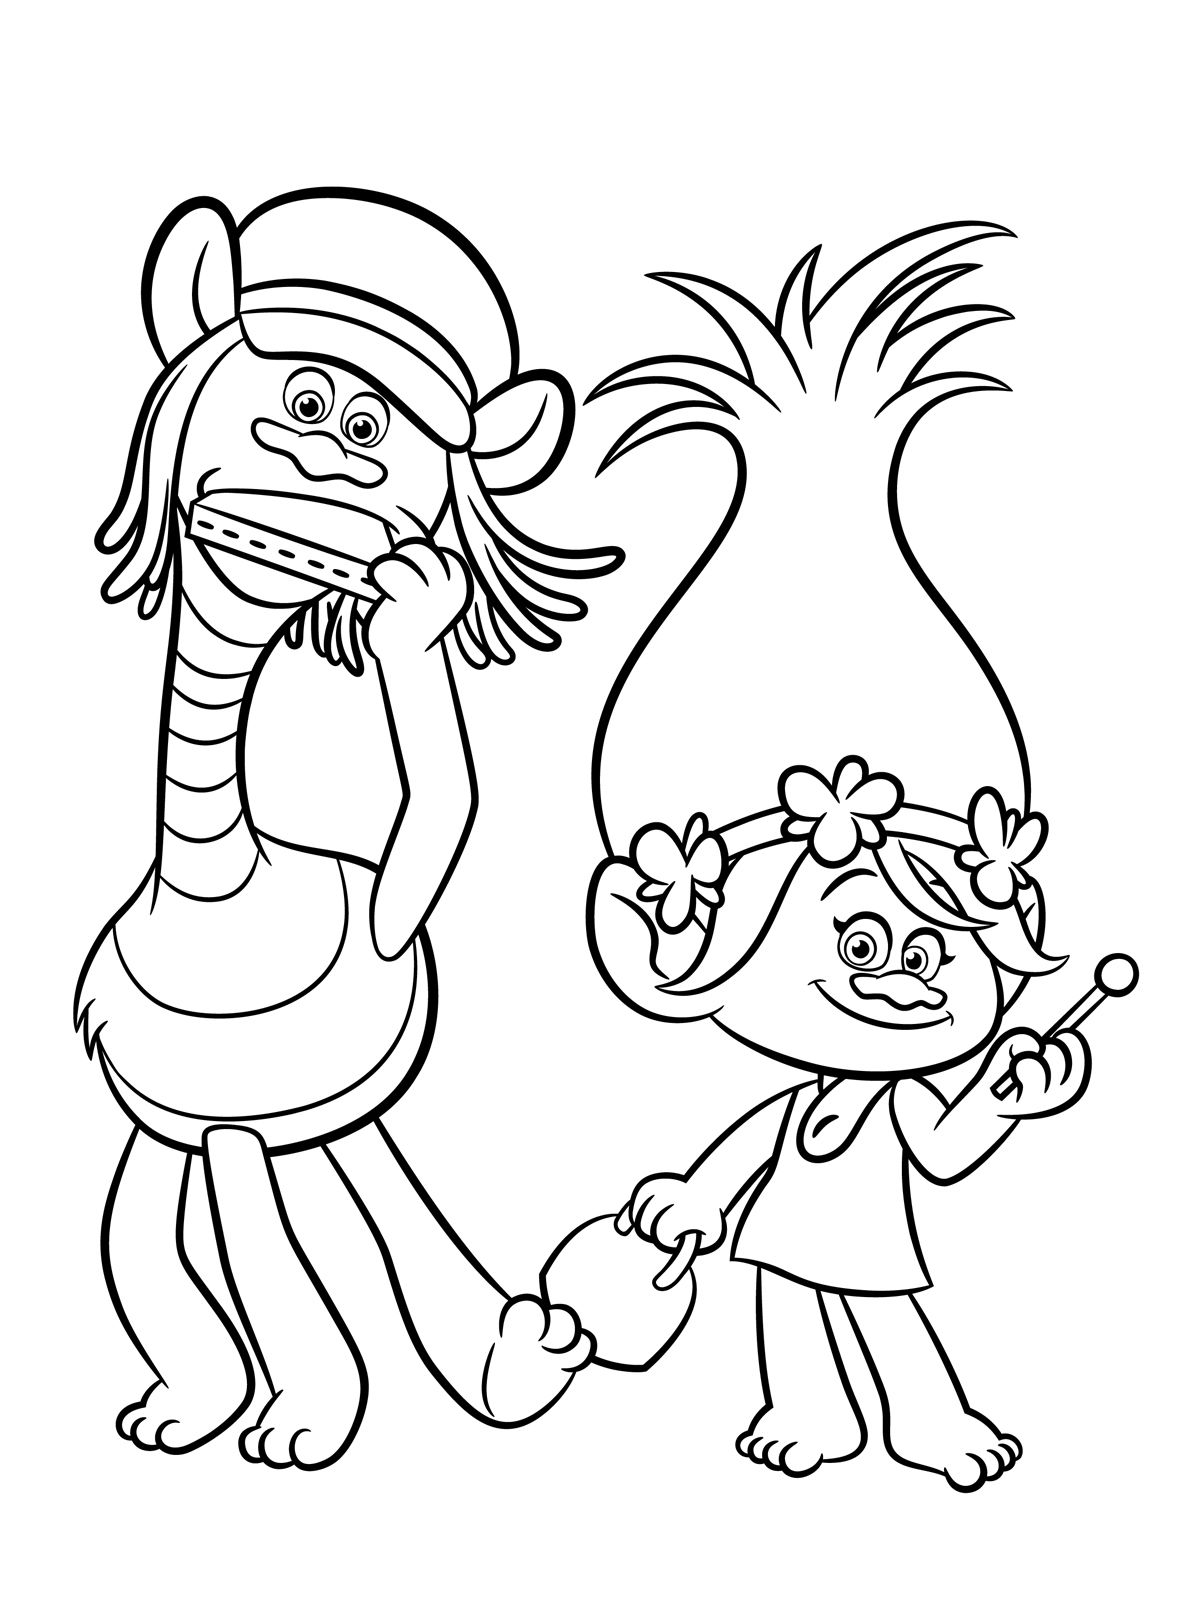 Trolls Coloring pages to download and print for free